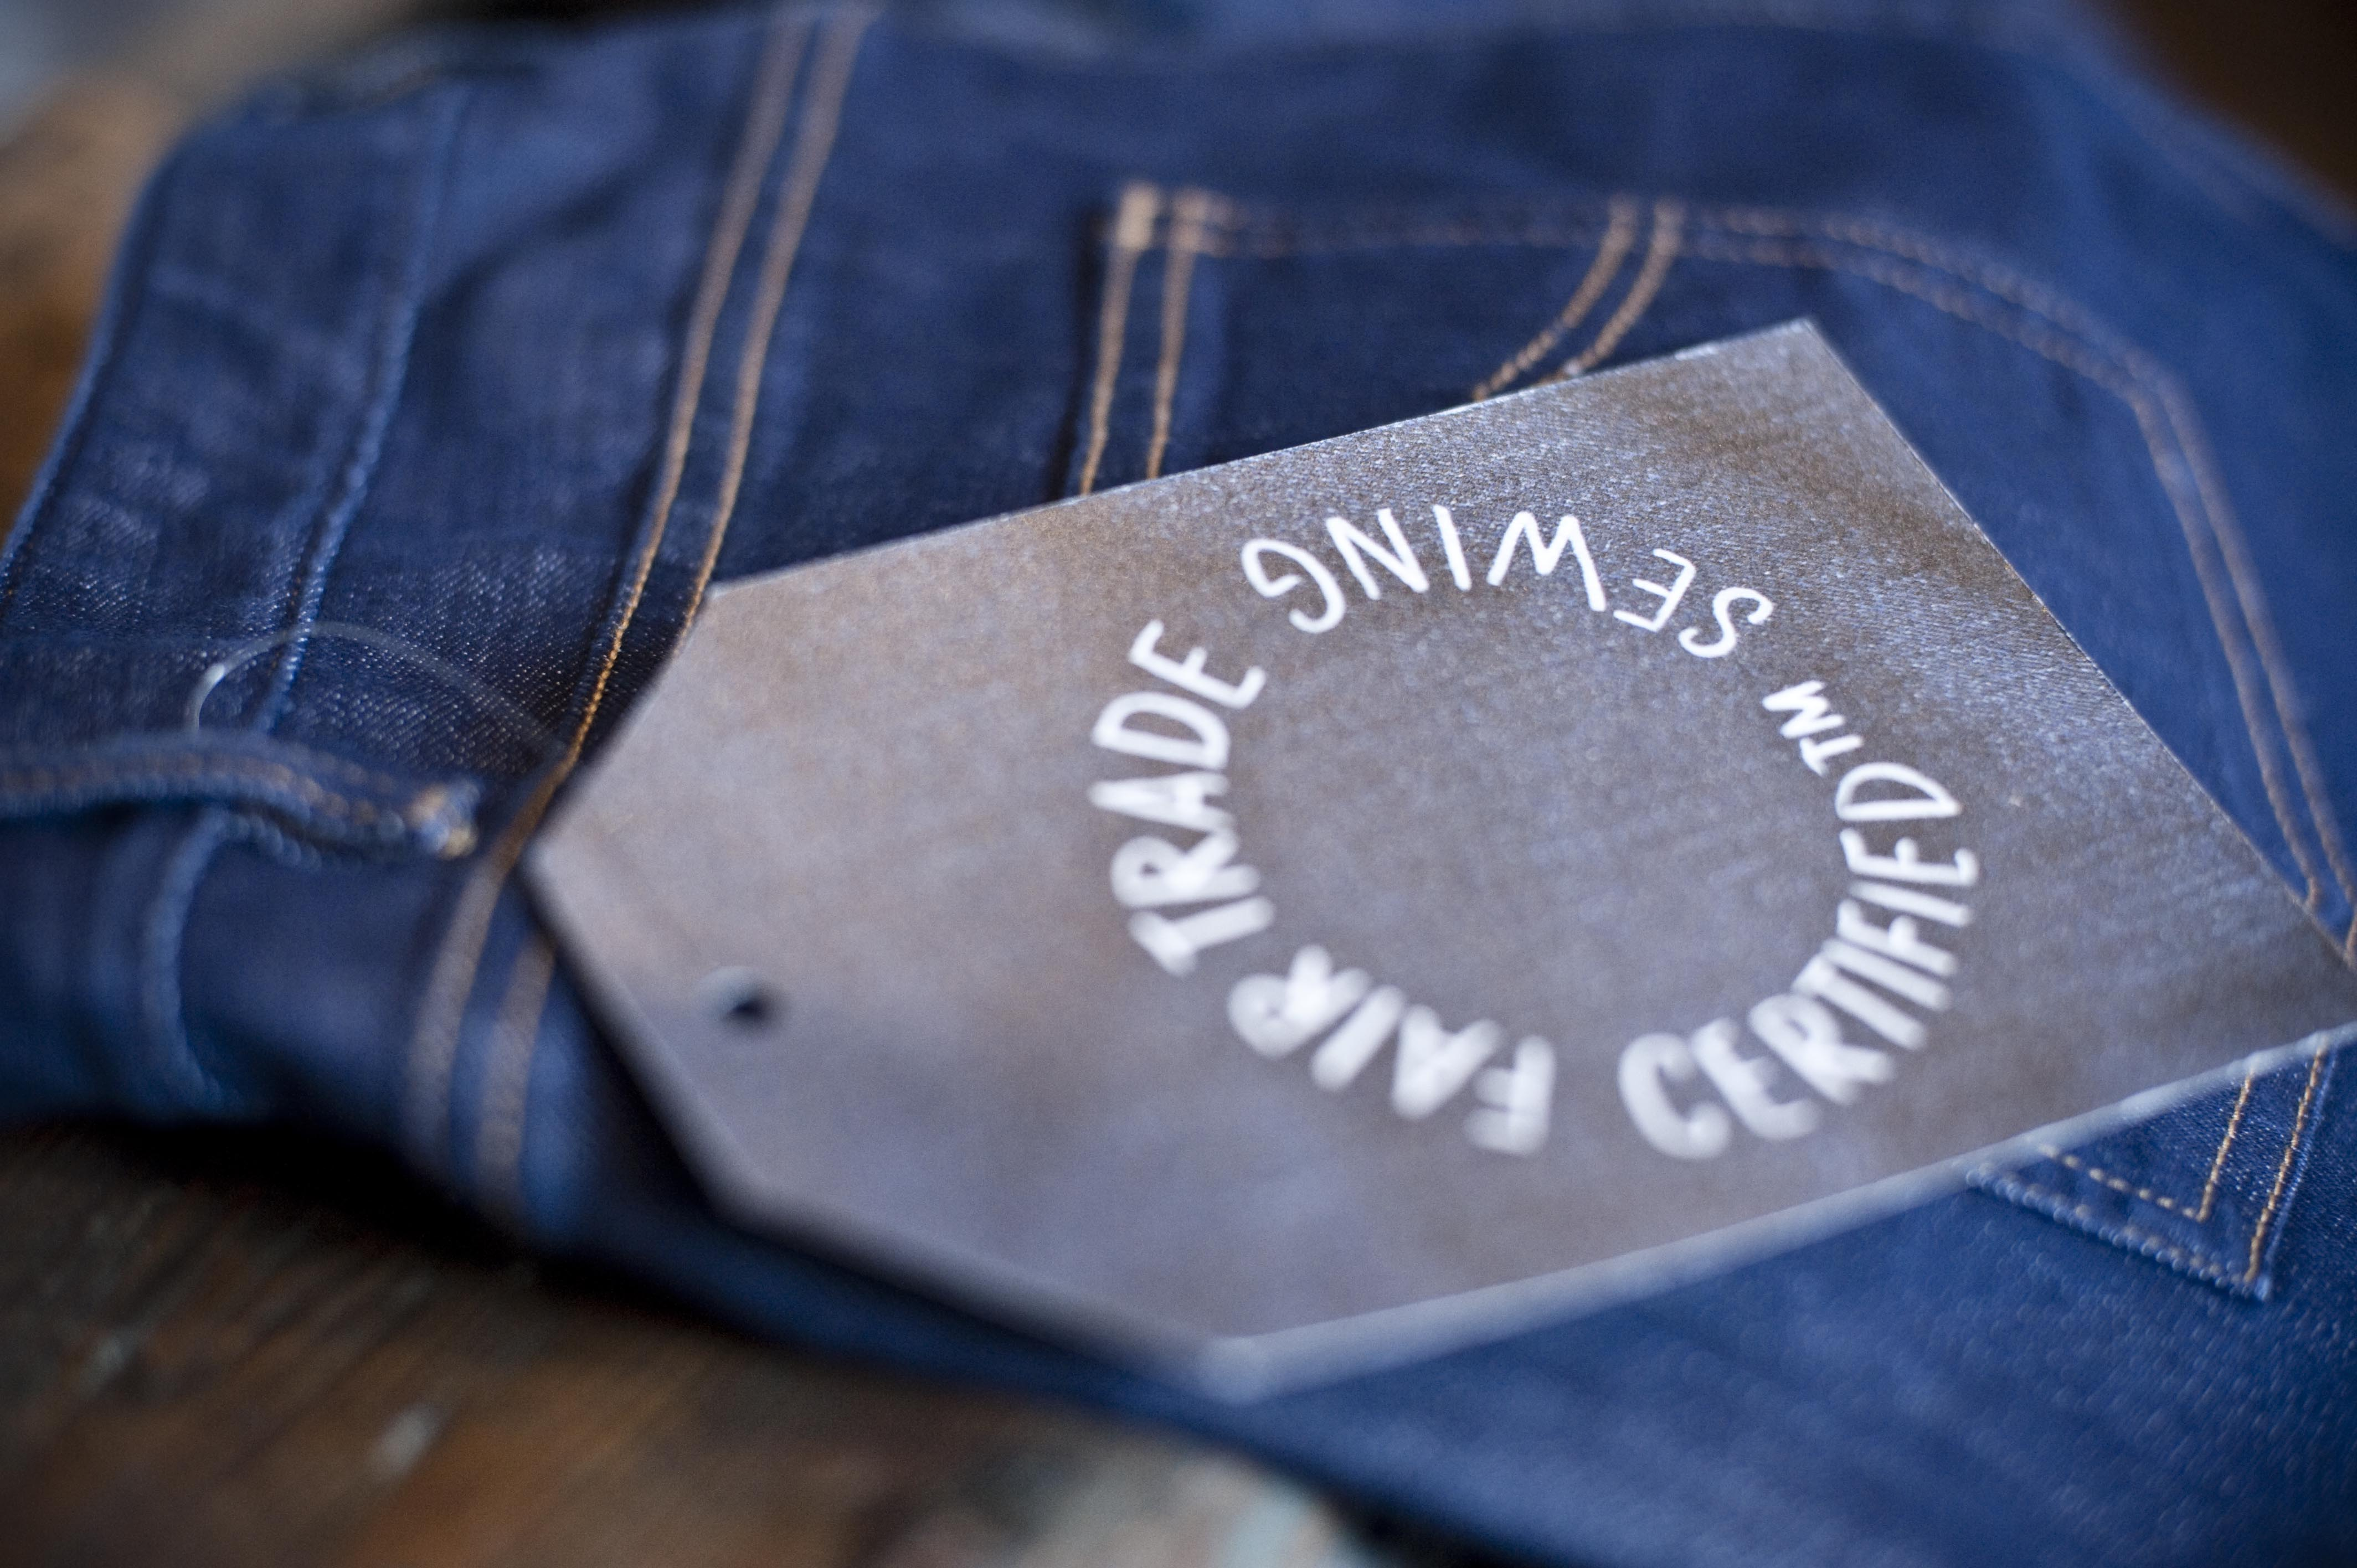 hot sale online 39841 bcb29 Patagonia Launch New Denim That Is Kinder To The Environment ...